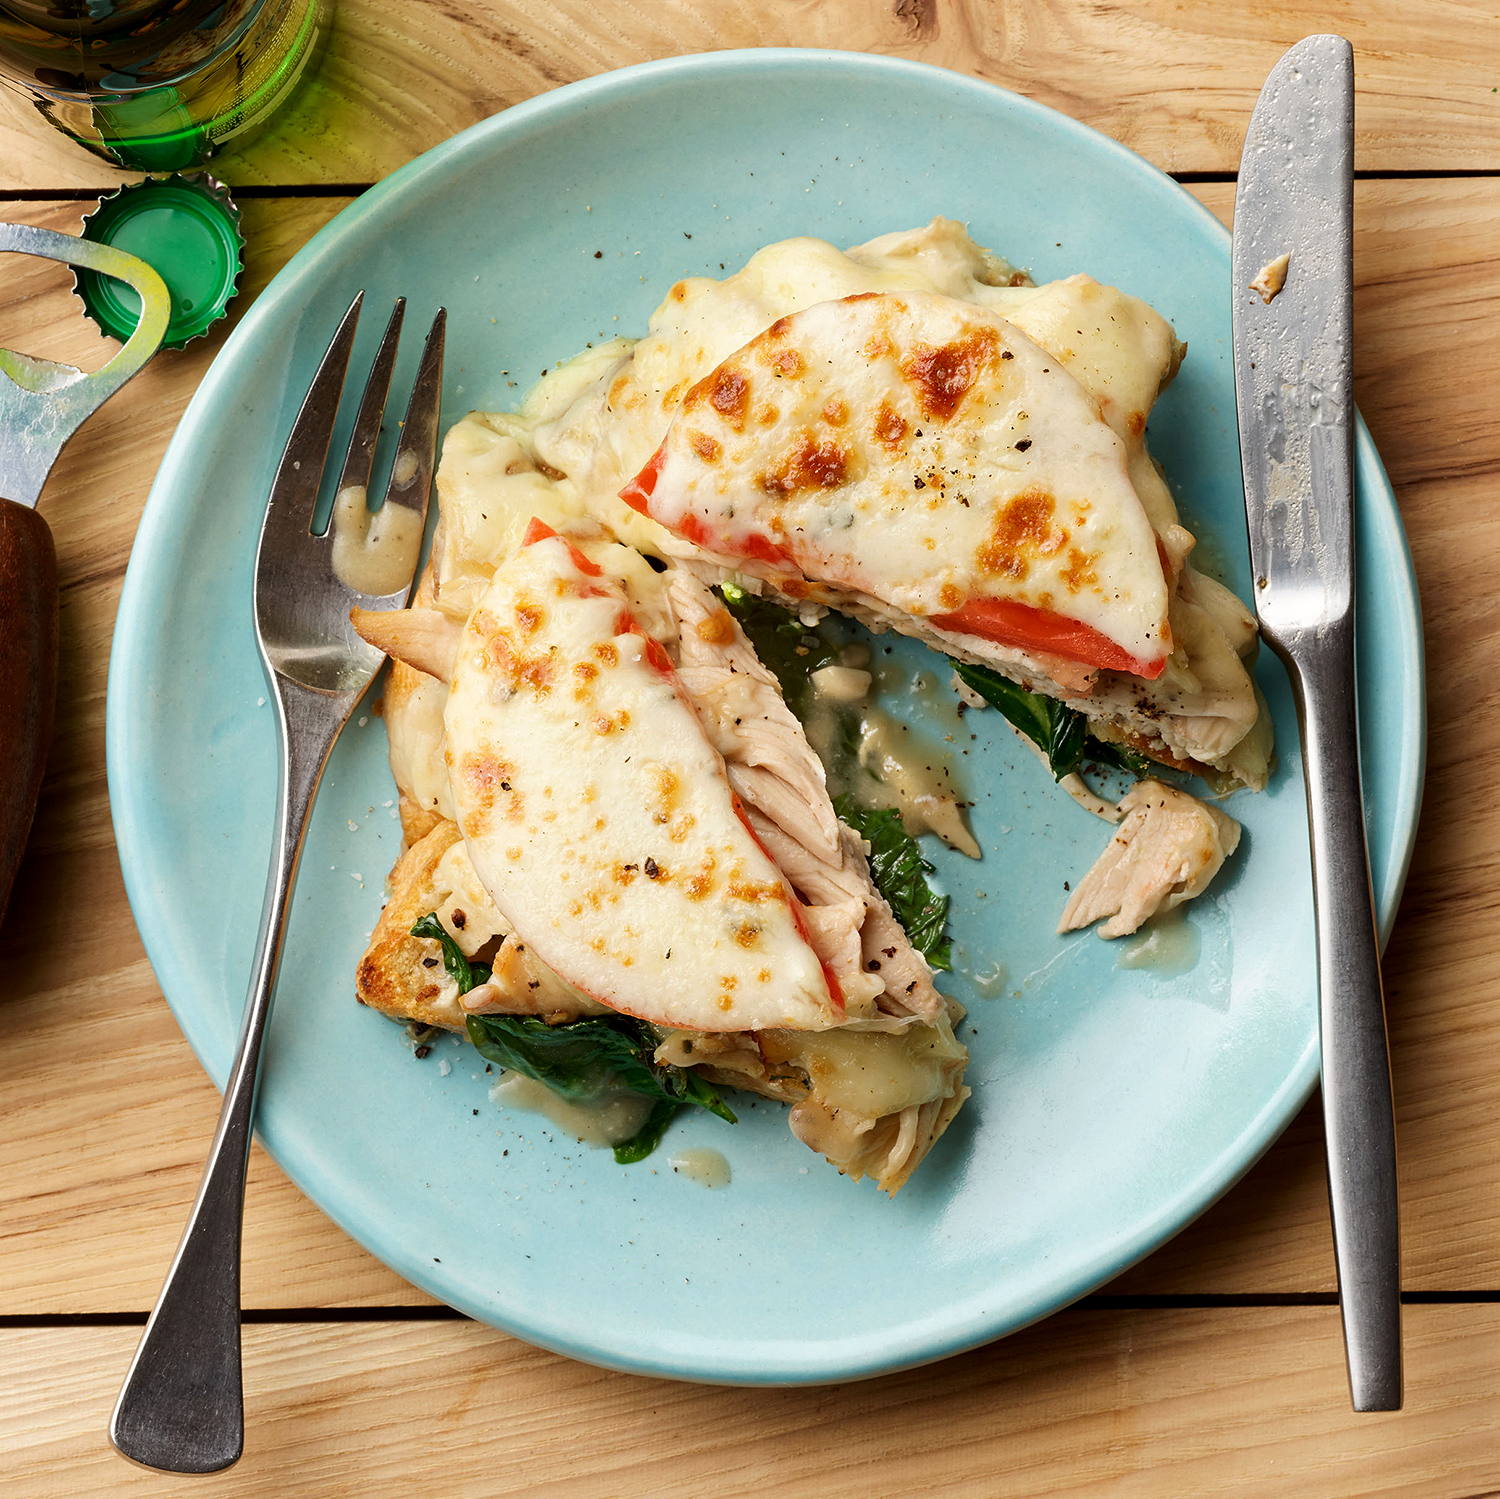 Garlic Toasts with Wilted Spinach, Turkey, Gravy, Tomato & Provolone